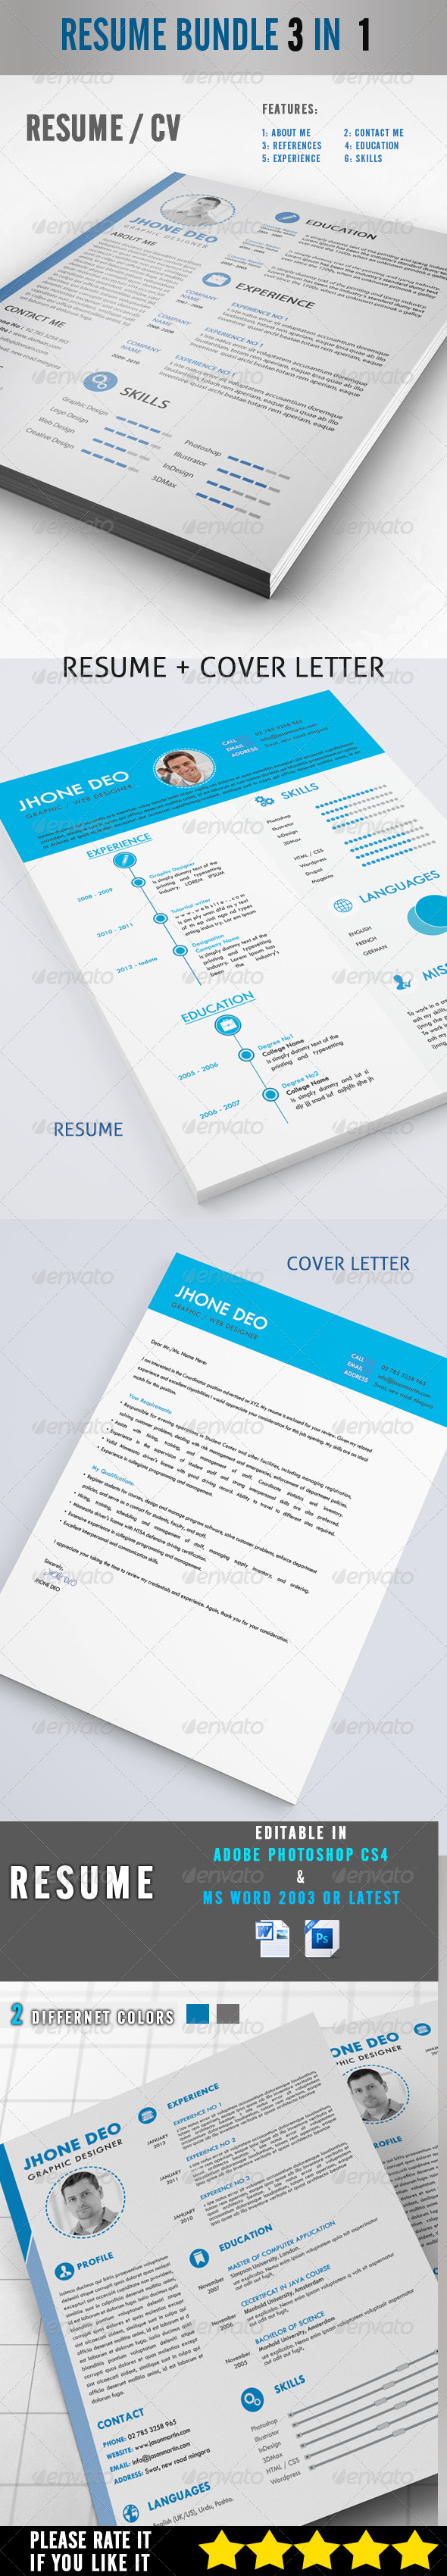 Resume Bundle 3 in 1